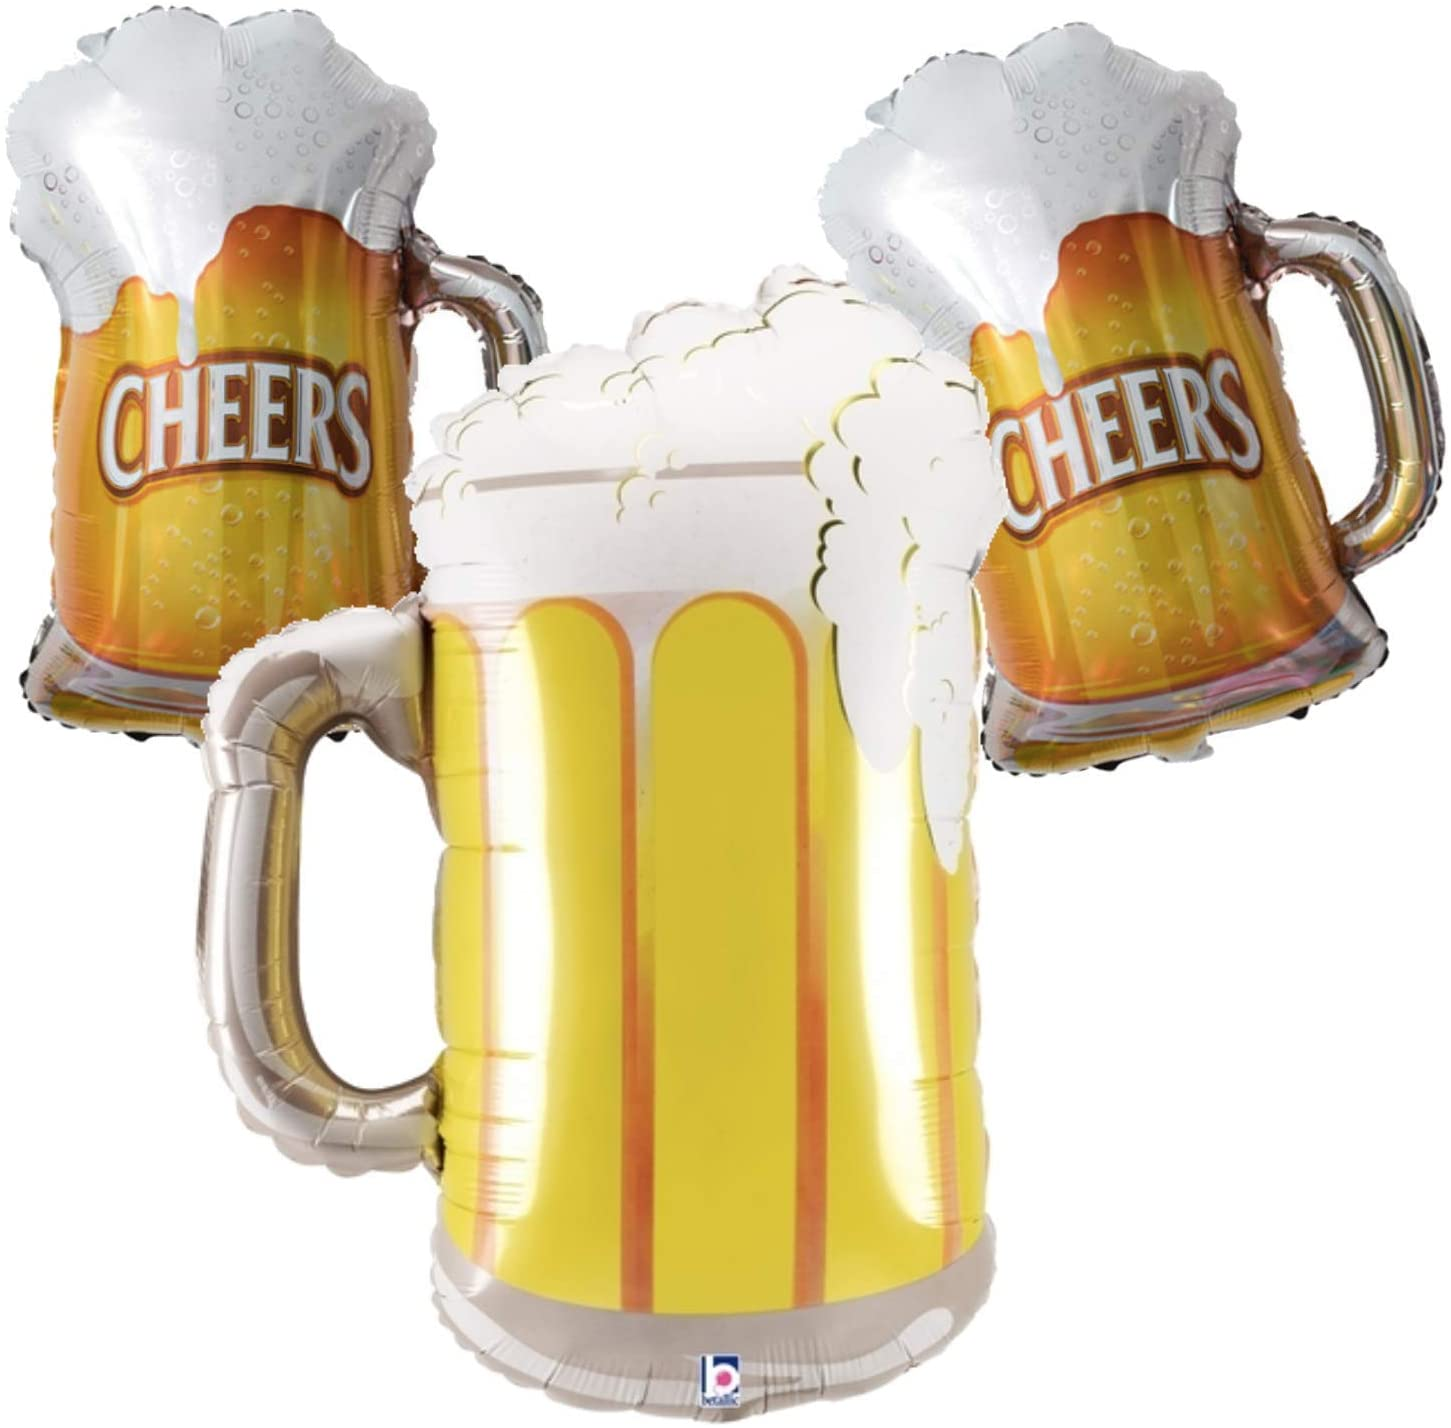 Beer Mug Party Balloon Decorations - Set of 3 Pint Glass Beers for A Beer and Alcohol Theme